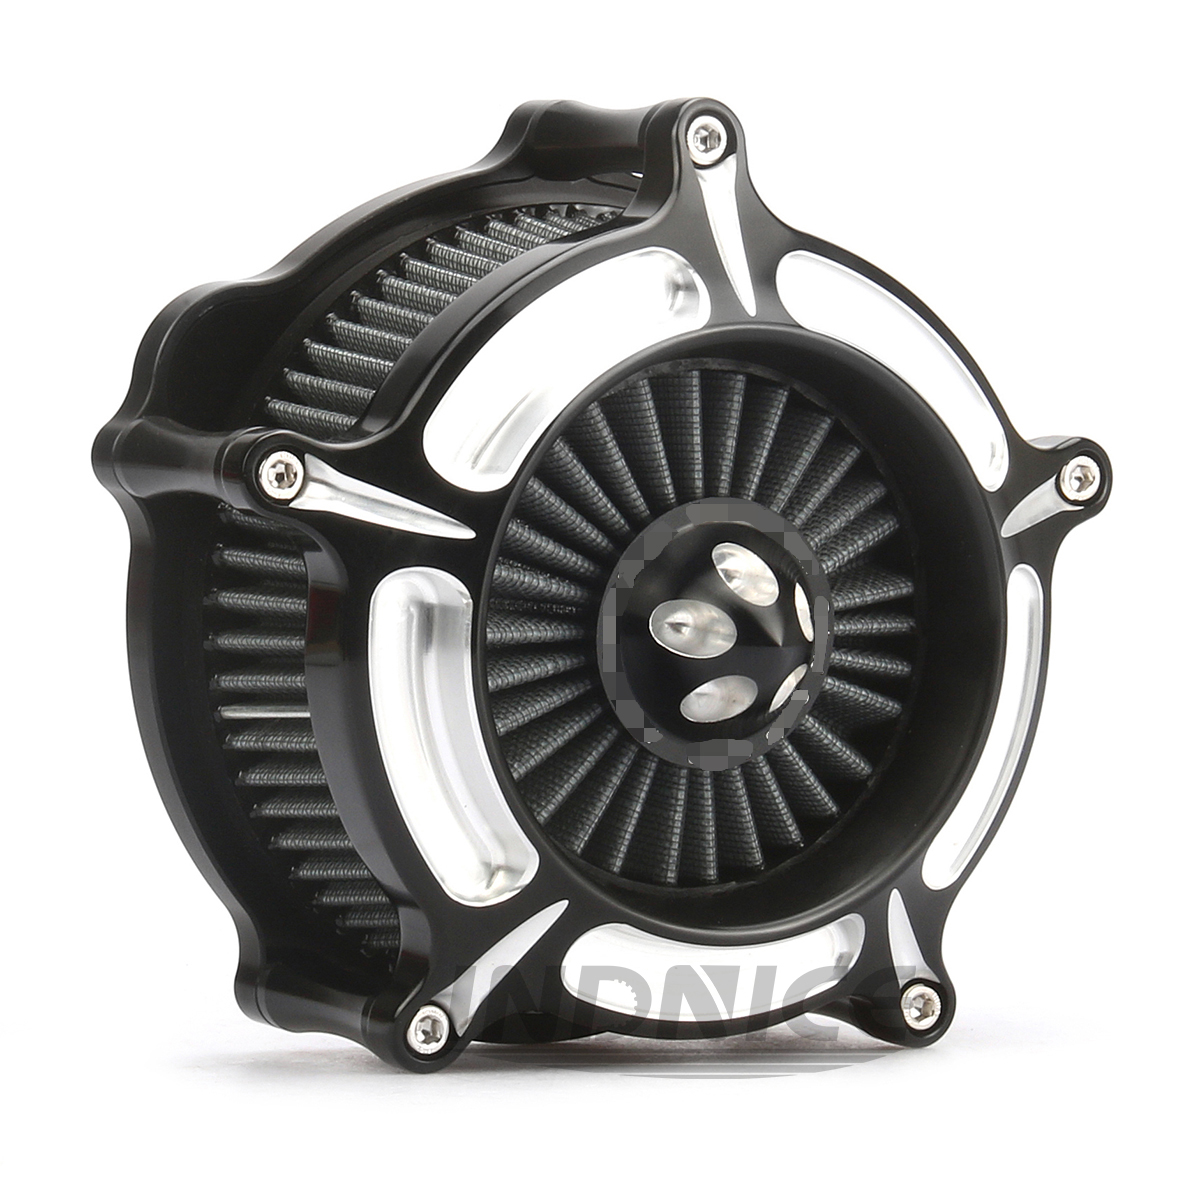 Turbine Edge Cut Air Intake Kit For Harley Sportster XL1200 Iron 883 Forty Eight for Harley Davidson Sportster 1200 Low XL1200L 2007-2011